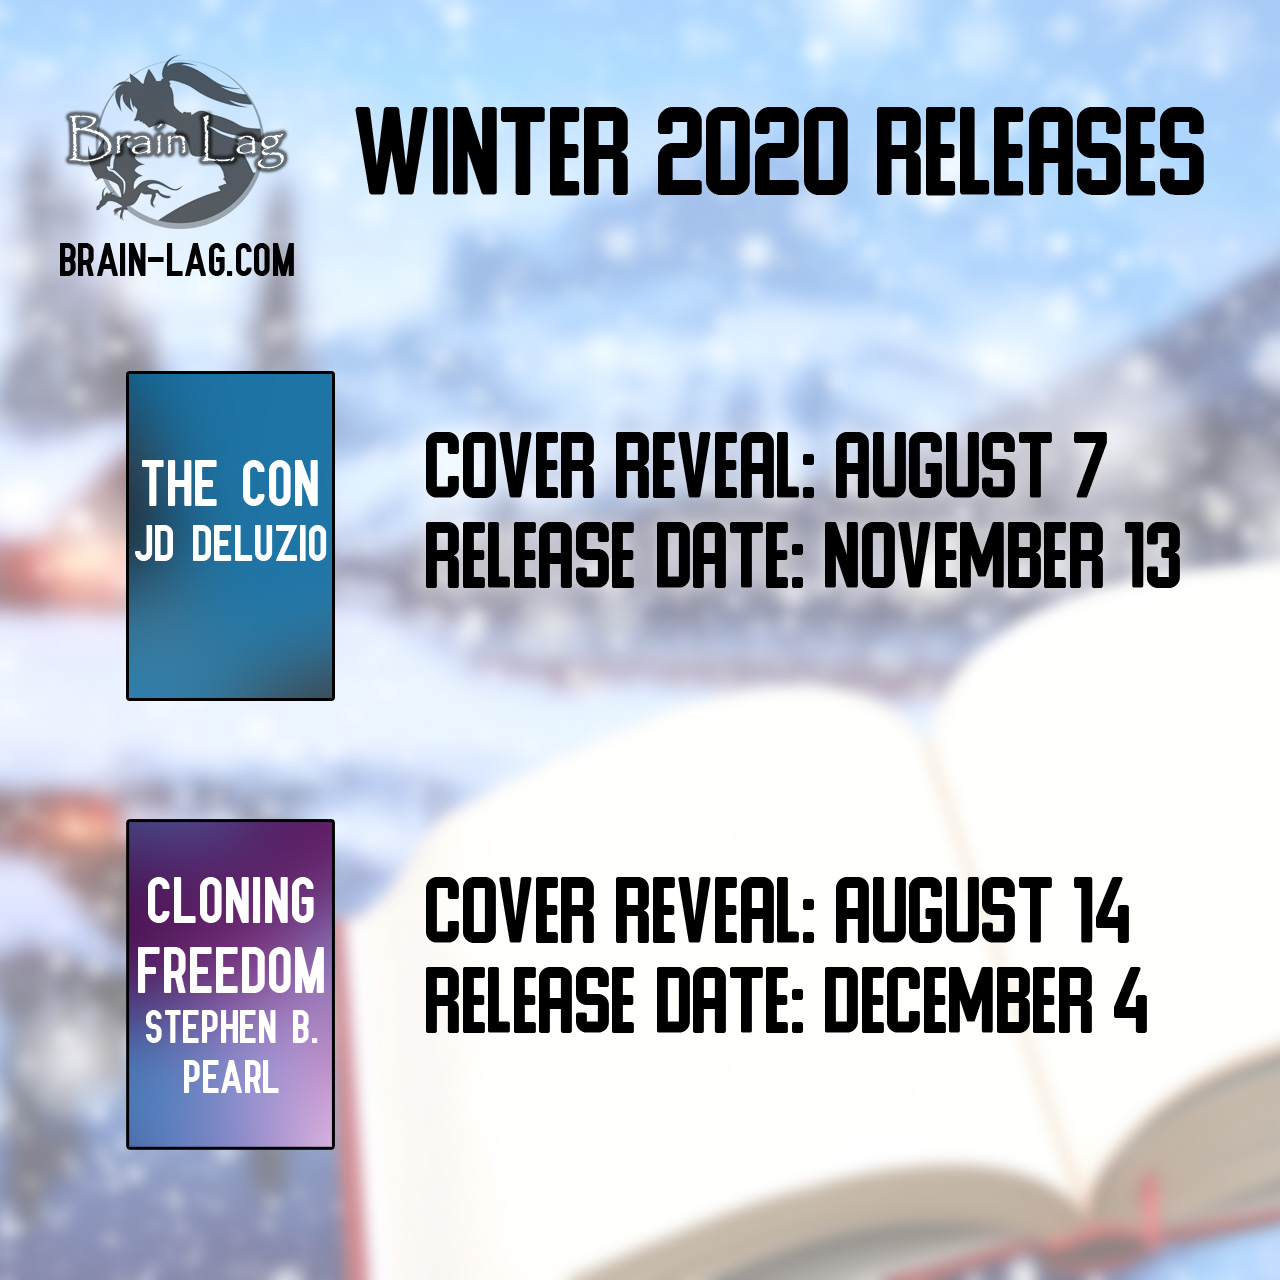 Promo image of a book in front of a winter scene showing placeholder graphics of upcoming books. Full details in post below.